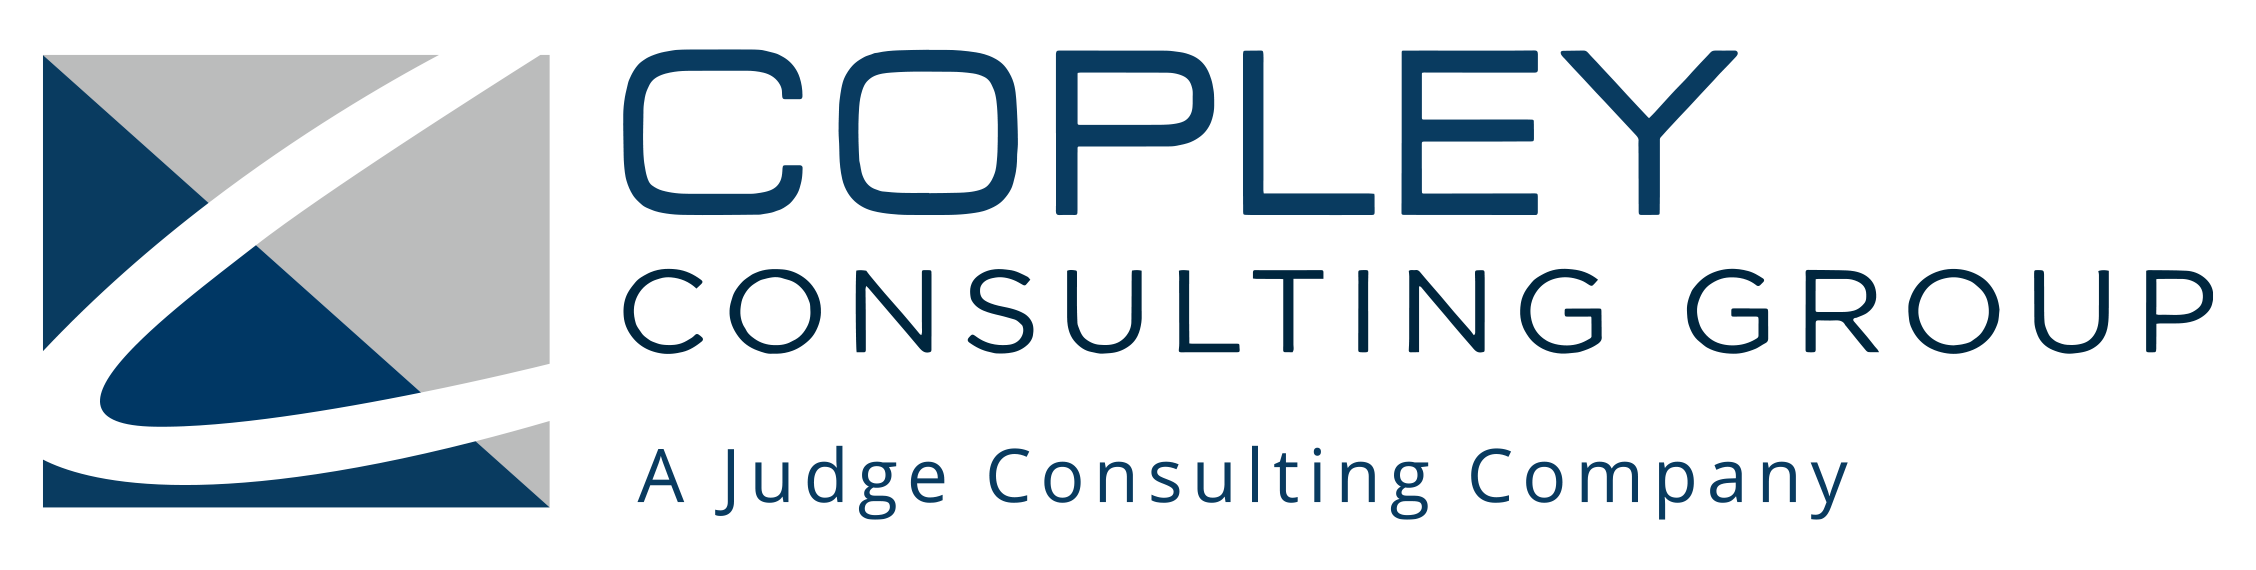 Copley Consulting Group